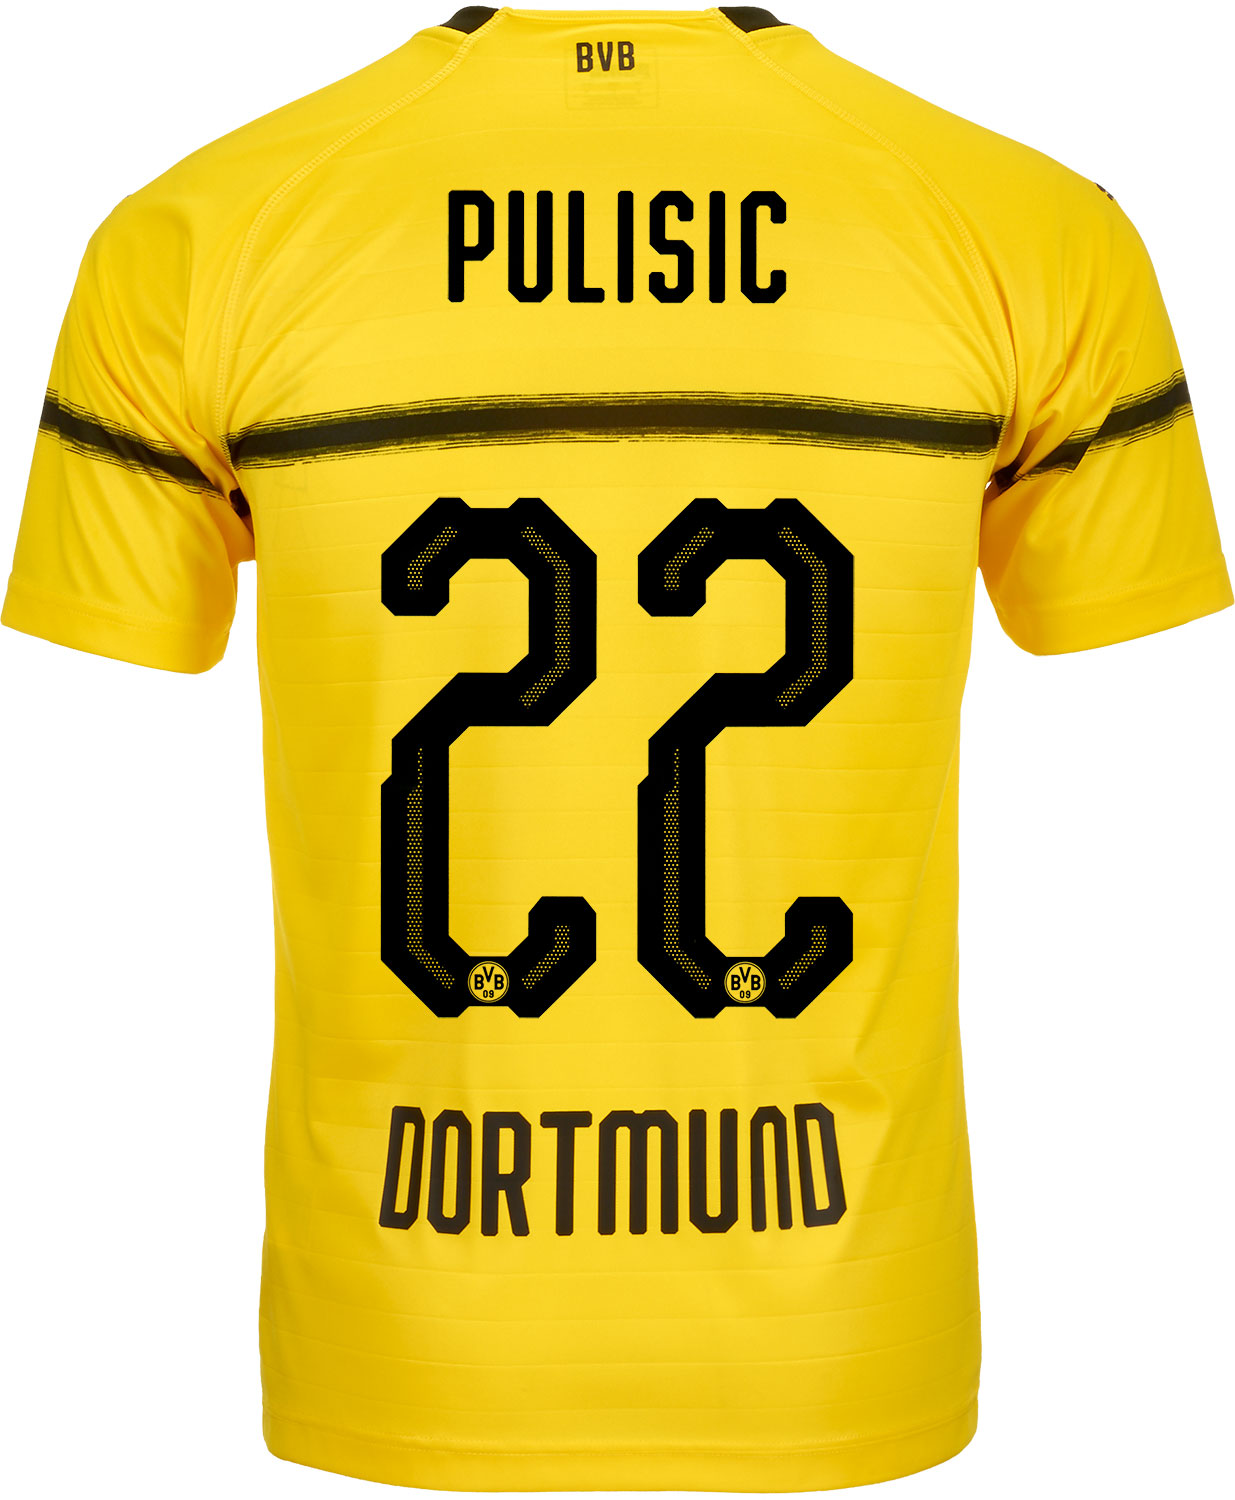 free shipping 337a8 3475d 2018/19 Kids PUMA Christian Pulisic Borussia Dortmund Cup ...